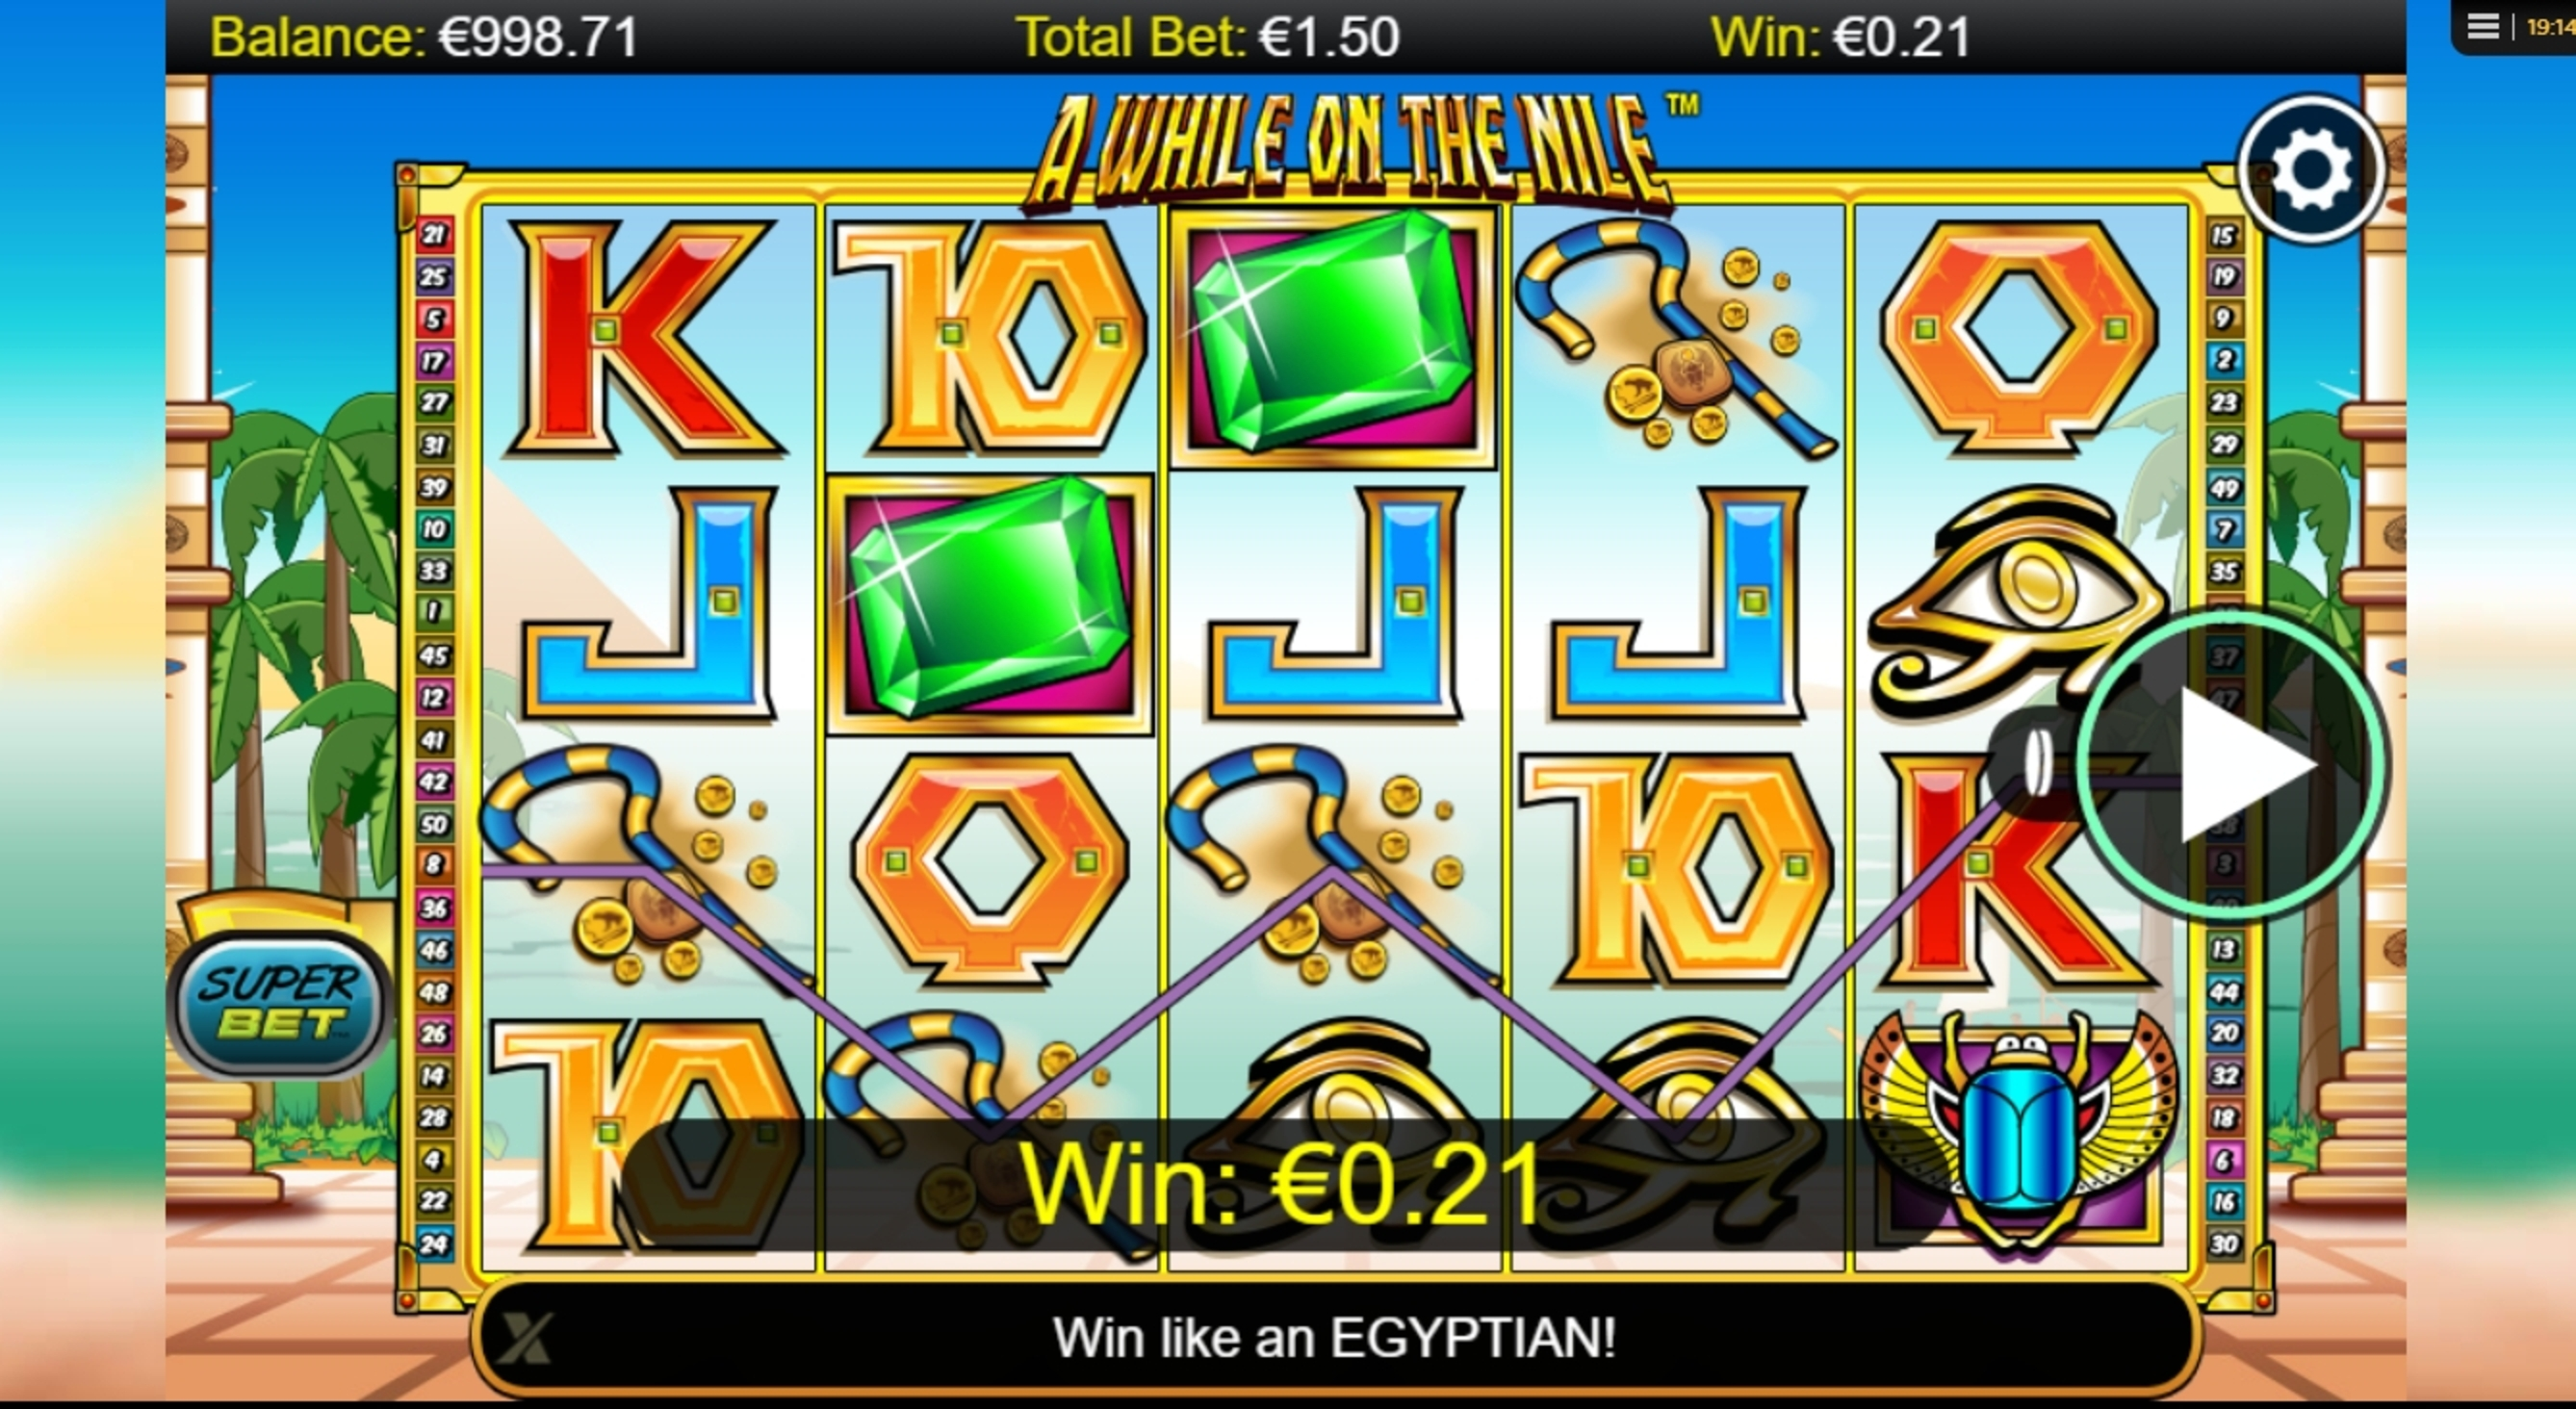 Play Gods of the Nile II Slot Machine Free with No Download